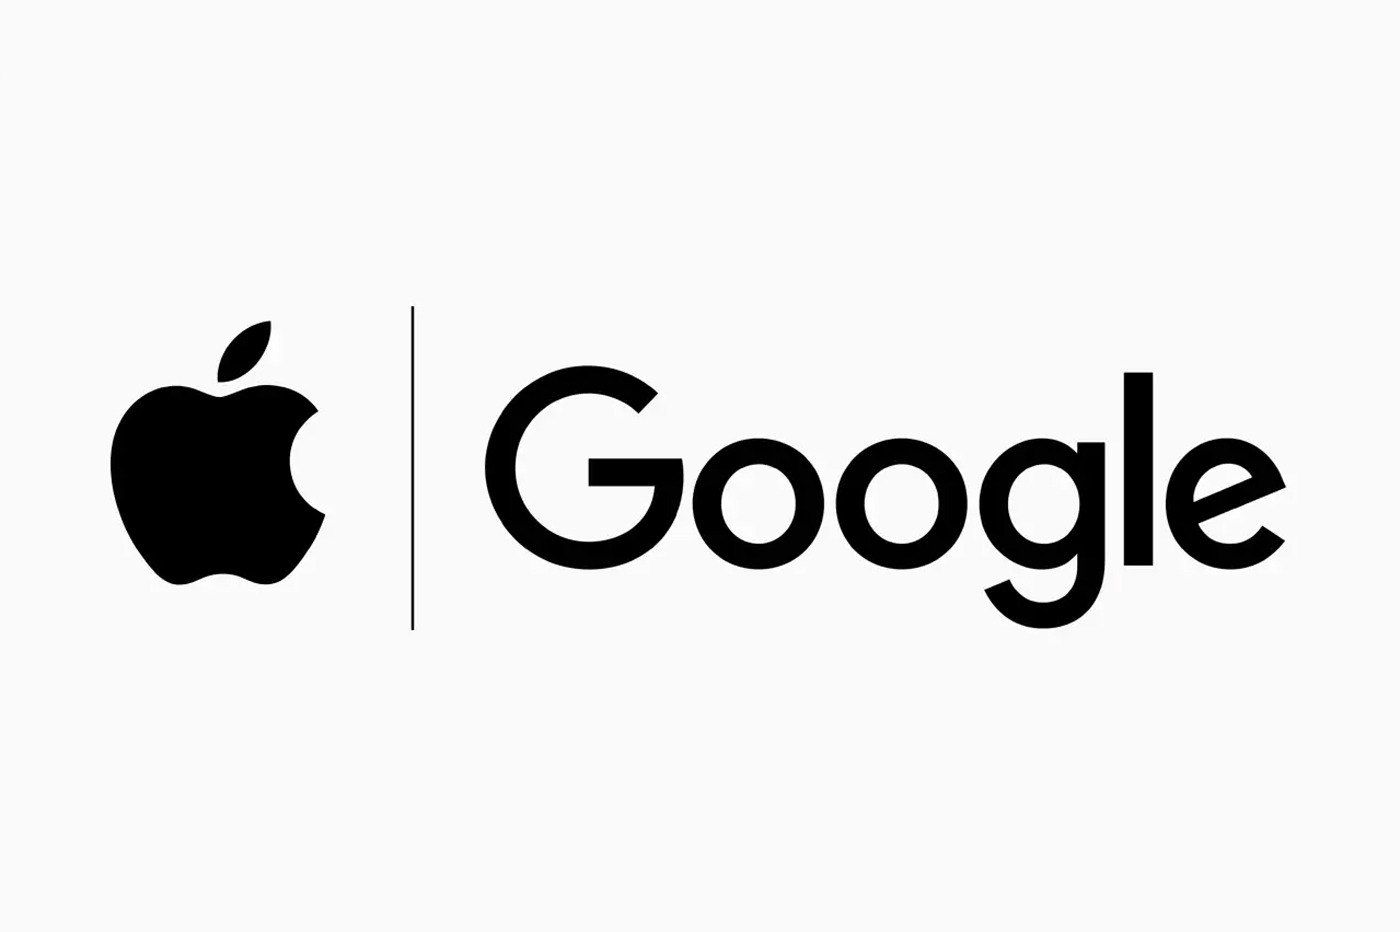 Application Apple Google Contact Tracing